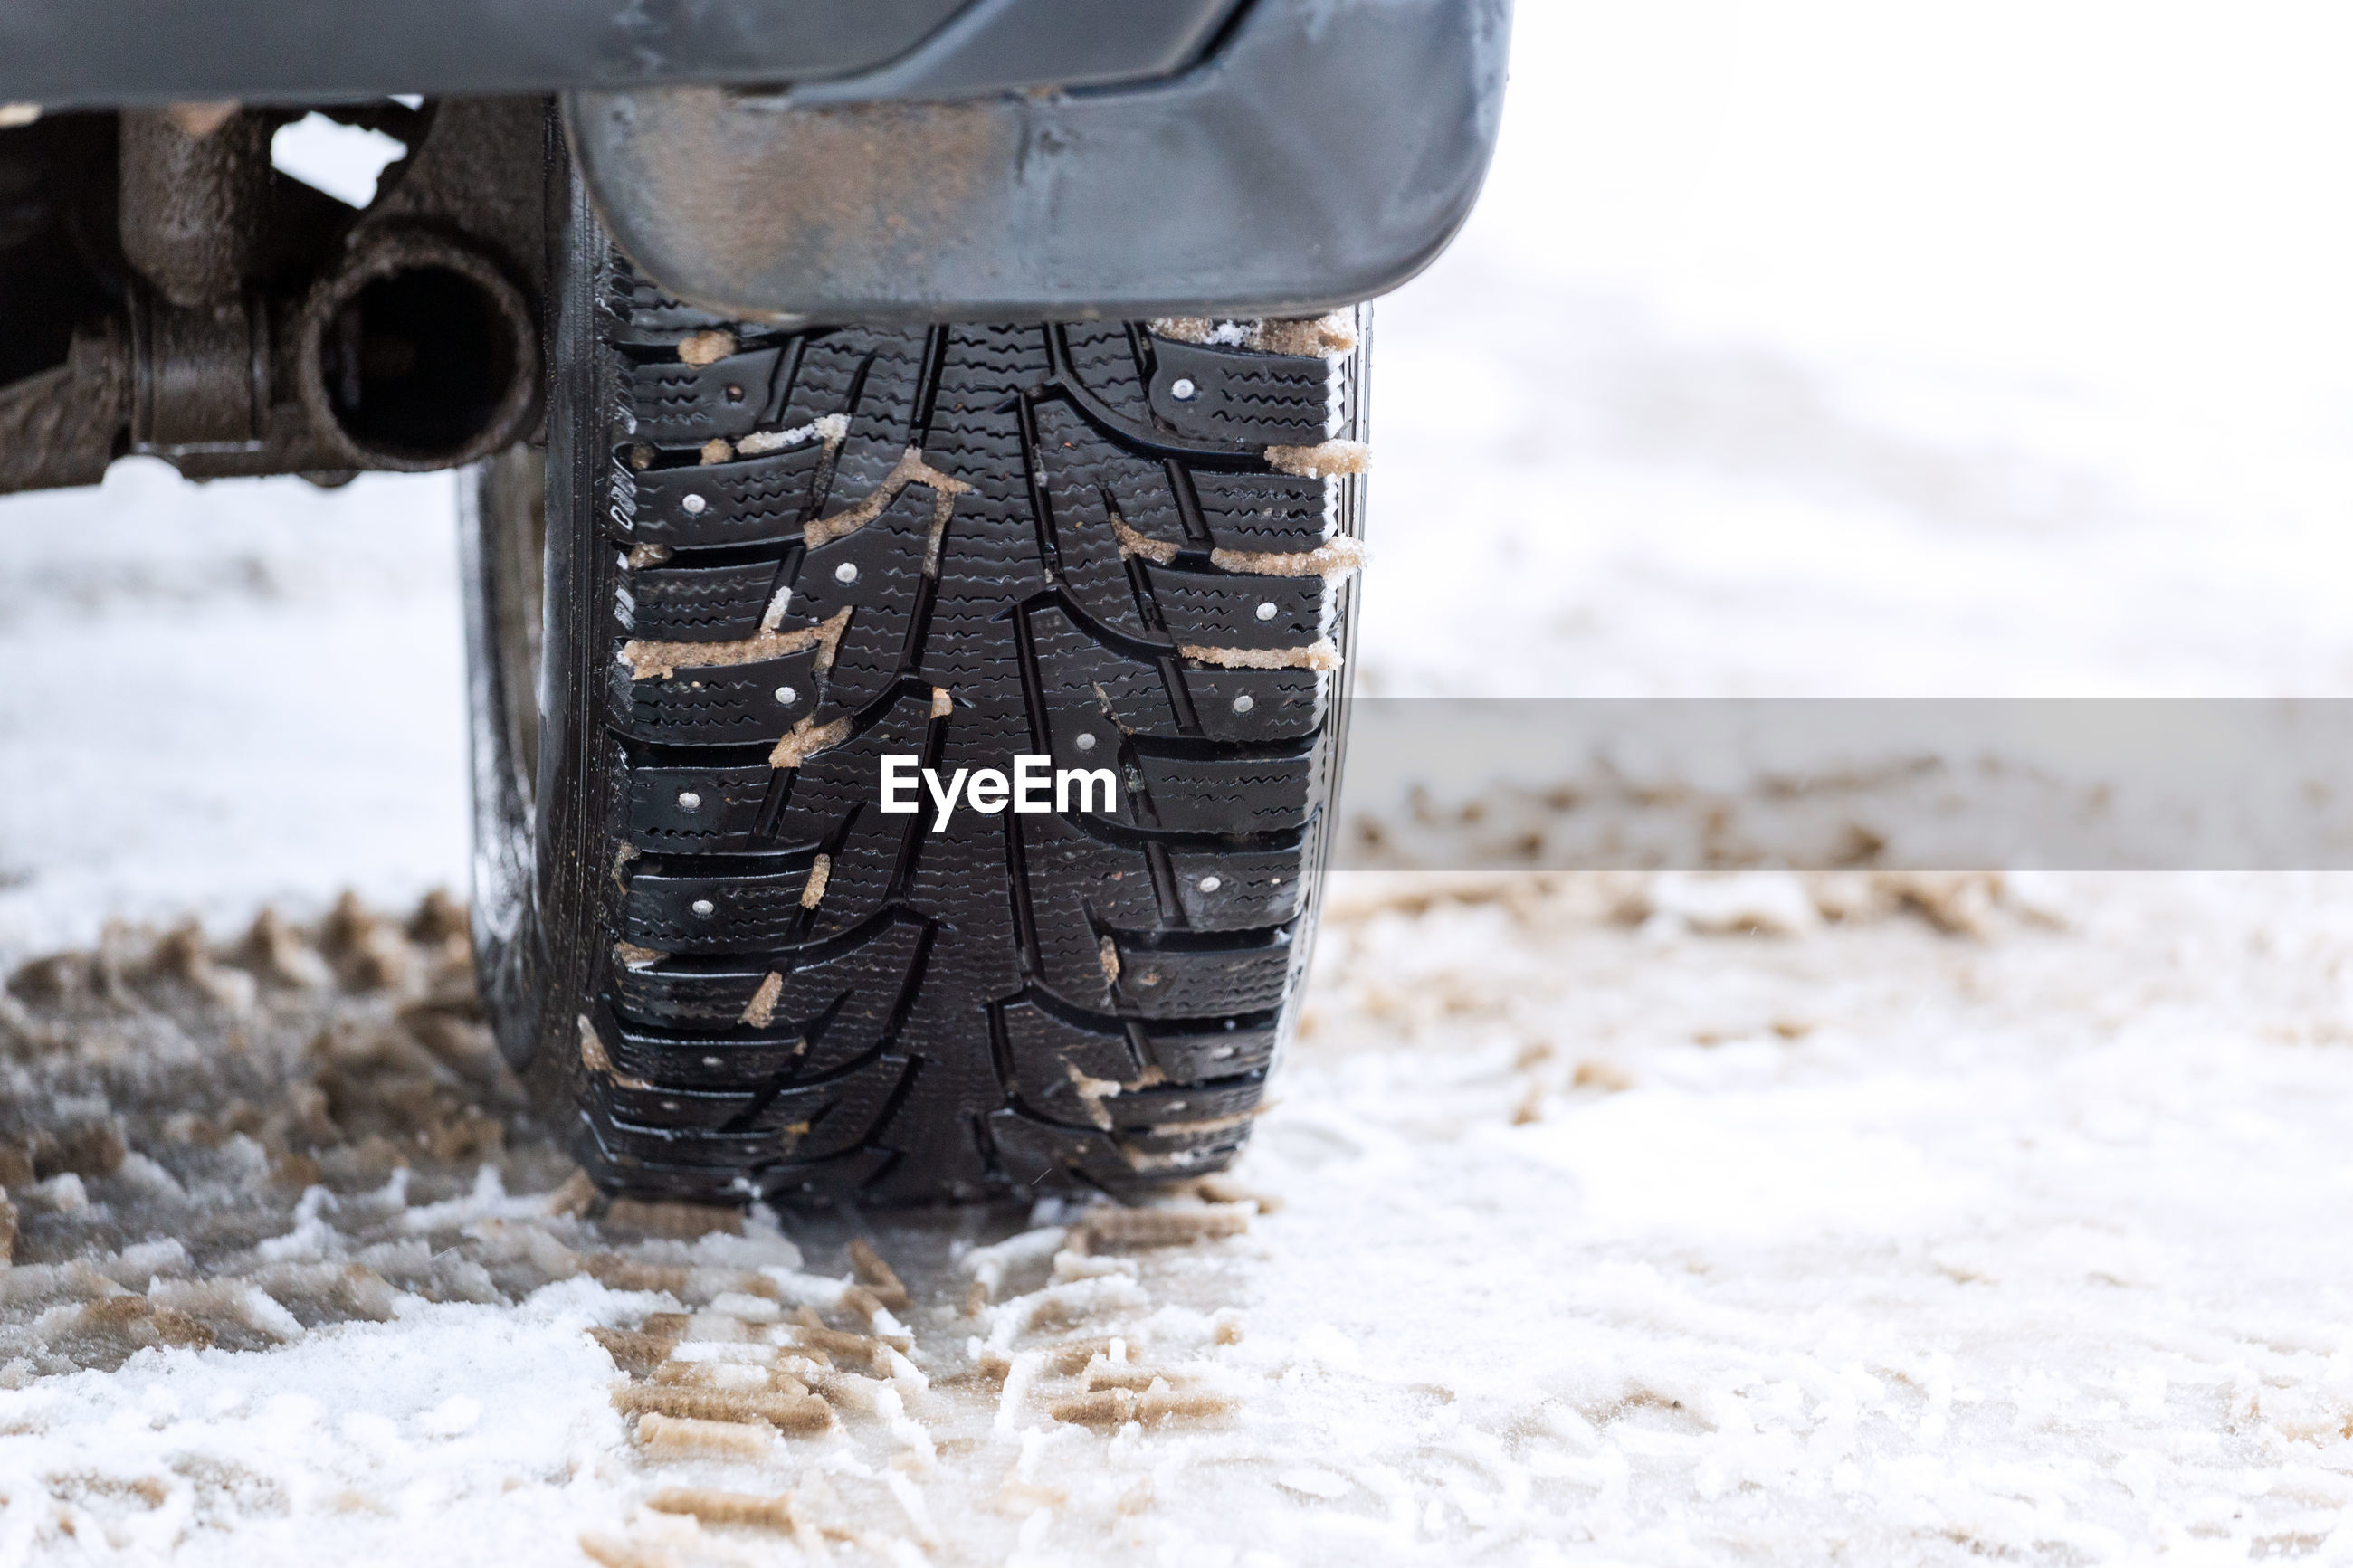 CLOSE-UP OF TIRE TRACK IN SNOW